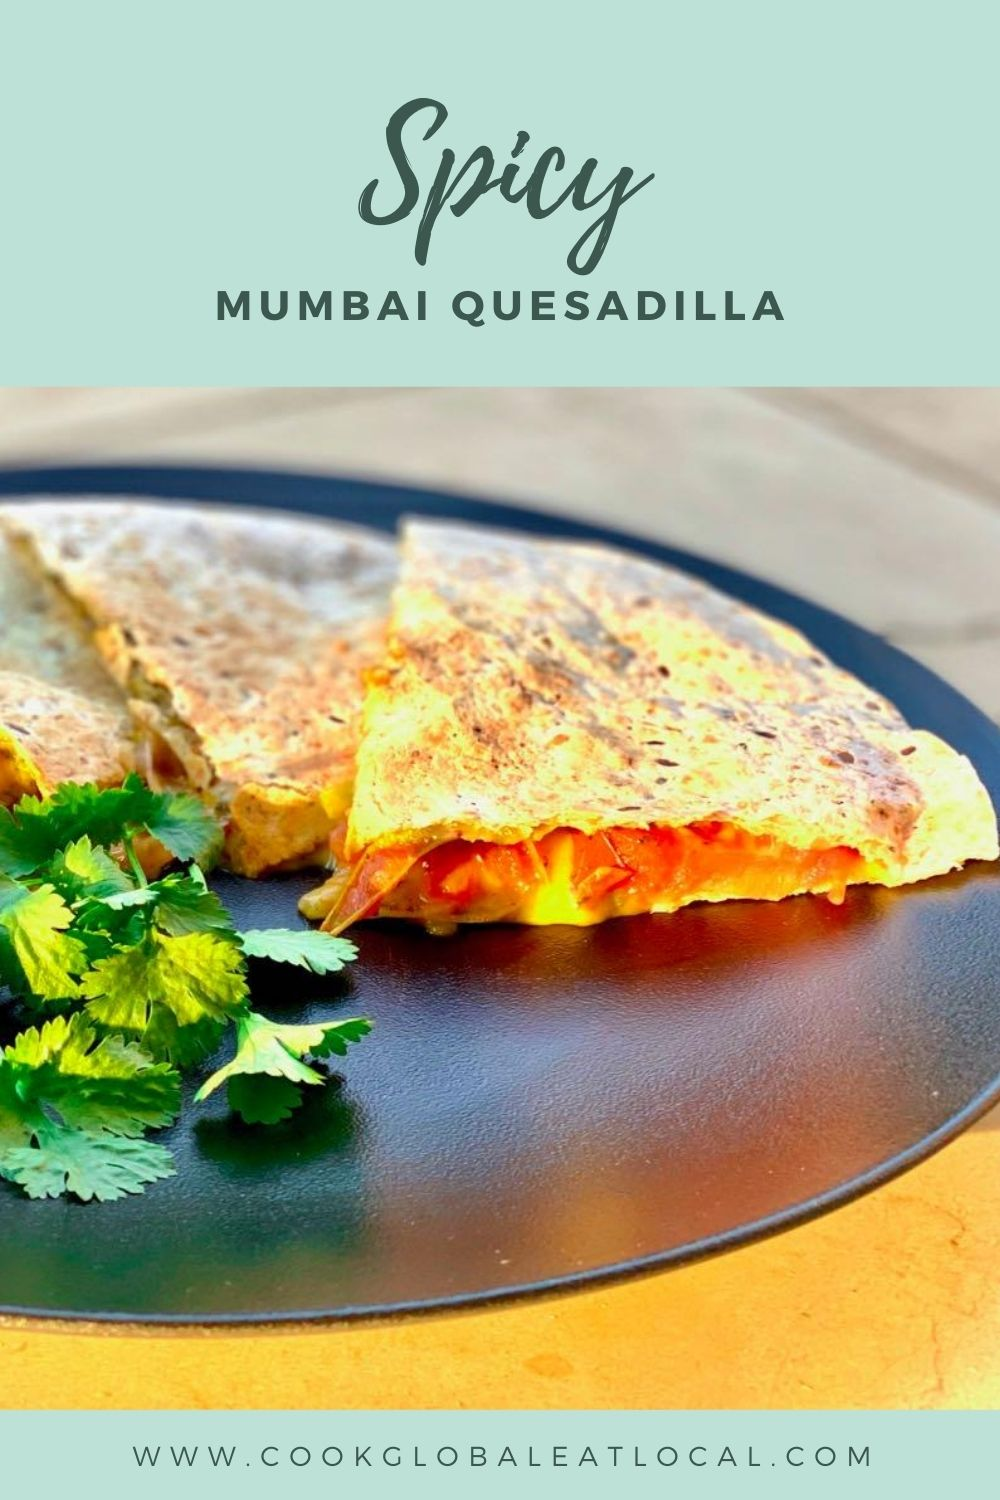 Spicy Mumbai Quesadilla | cookglobaleatlocal.com